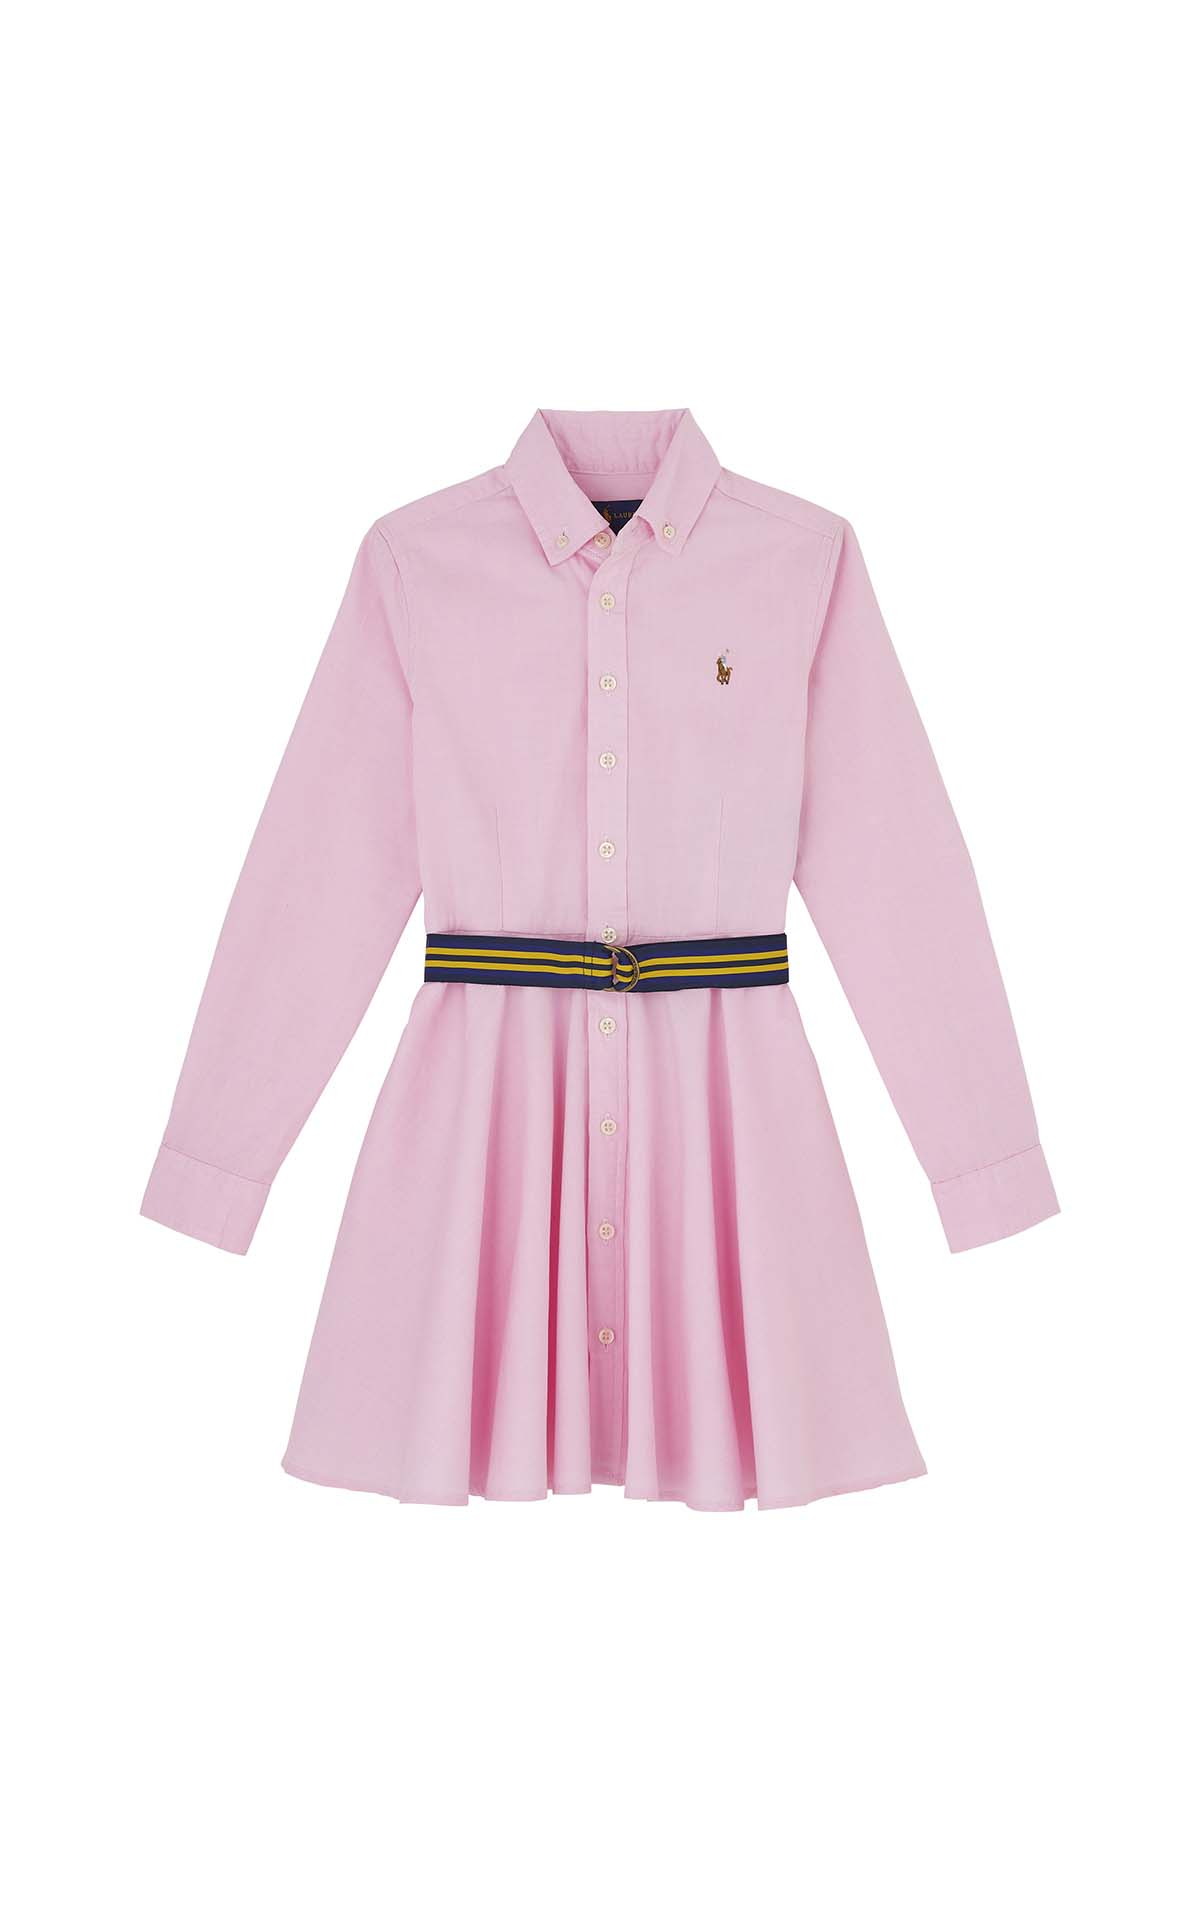 Polo Ralph Lauren Children Oxford shirtdress at The Bicester Village Shopping Collection